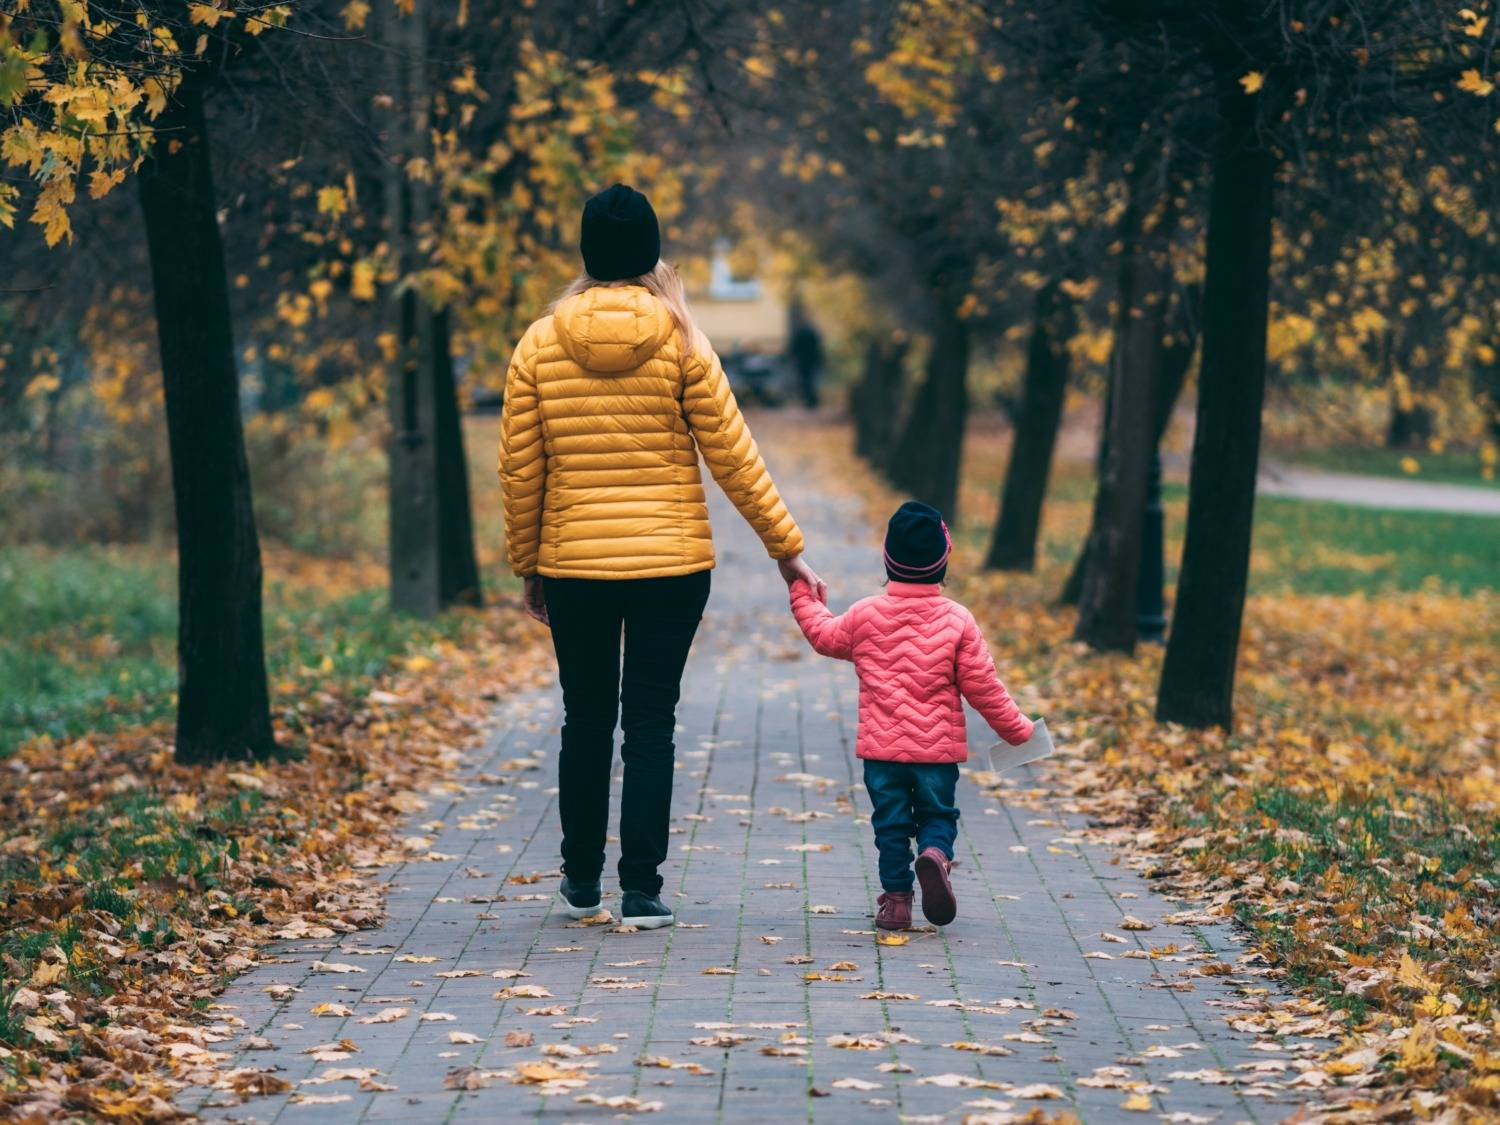 A Woman And Child Holding Hands Walking Through A Path Next To Autumn Trees